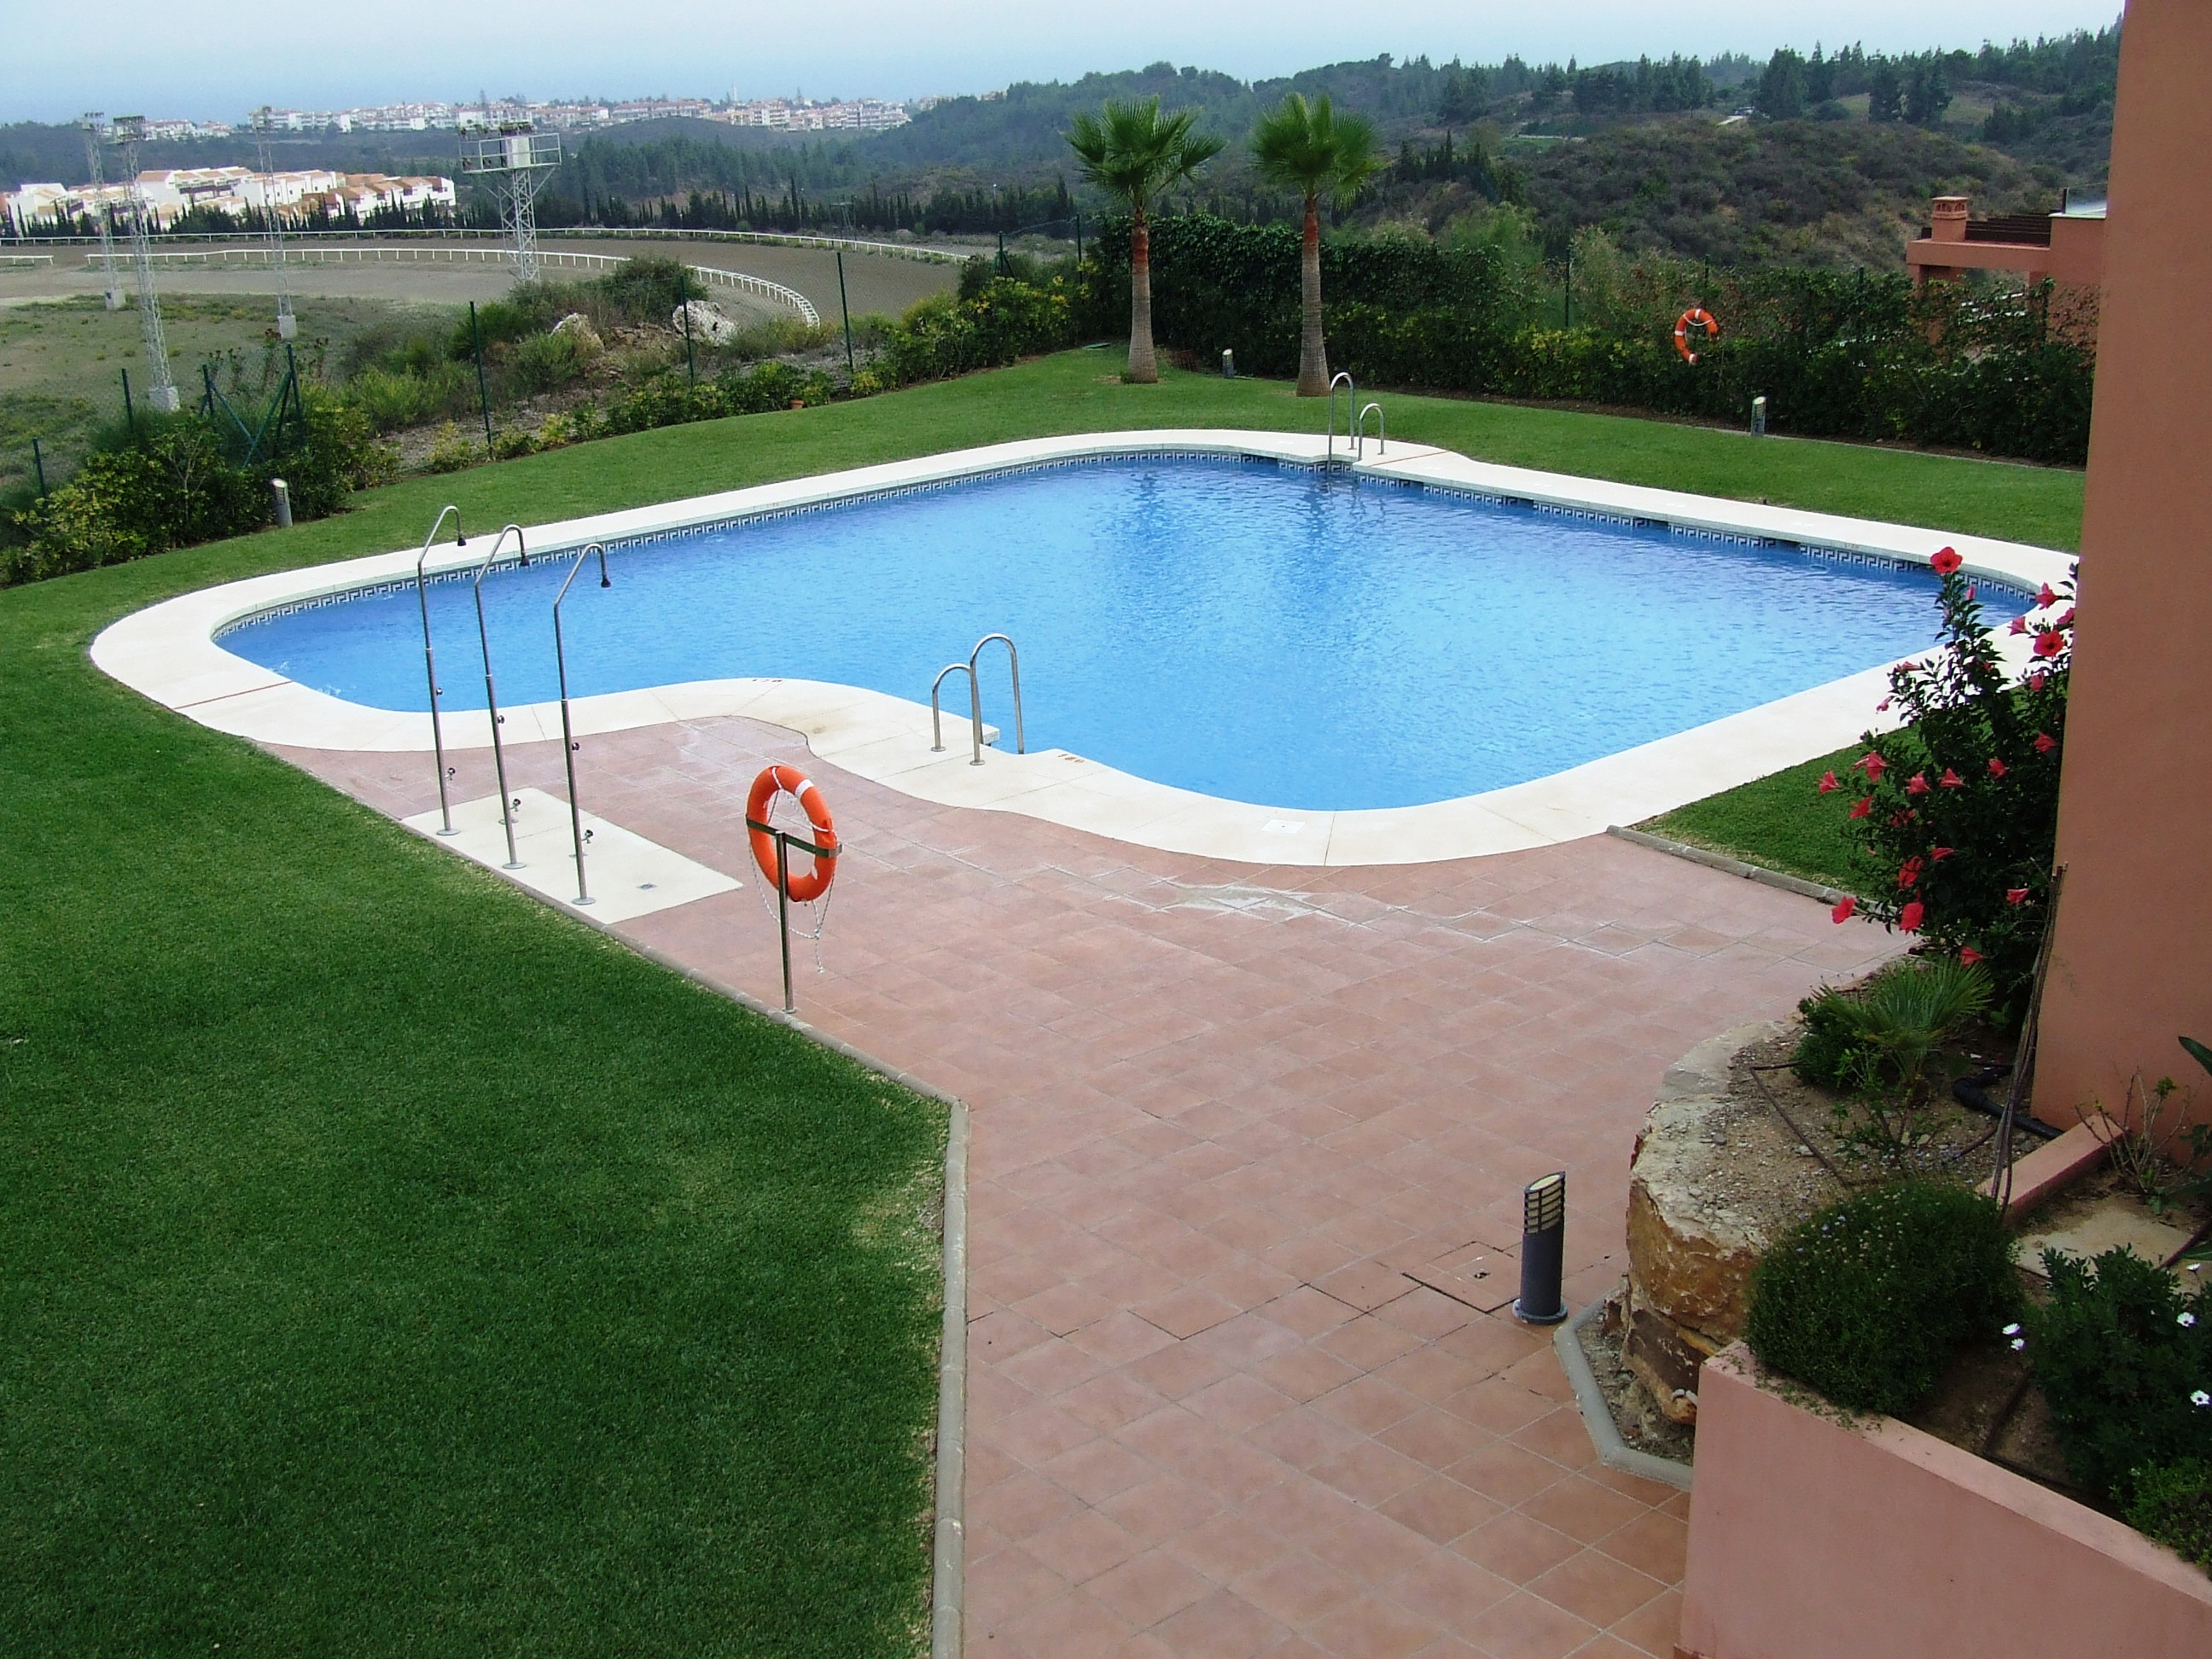 http://estatesinthesun.com/properties/wp-content/uploads/2014/07/piscina.jpg